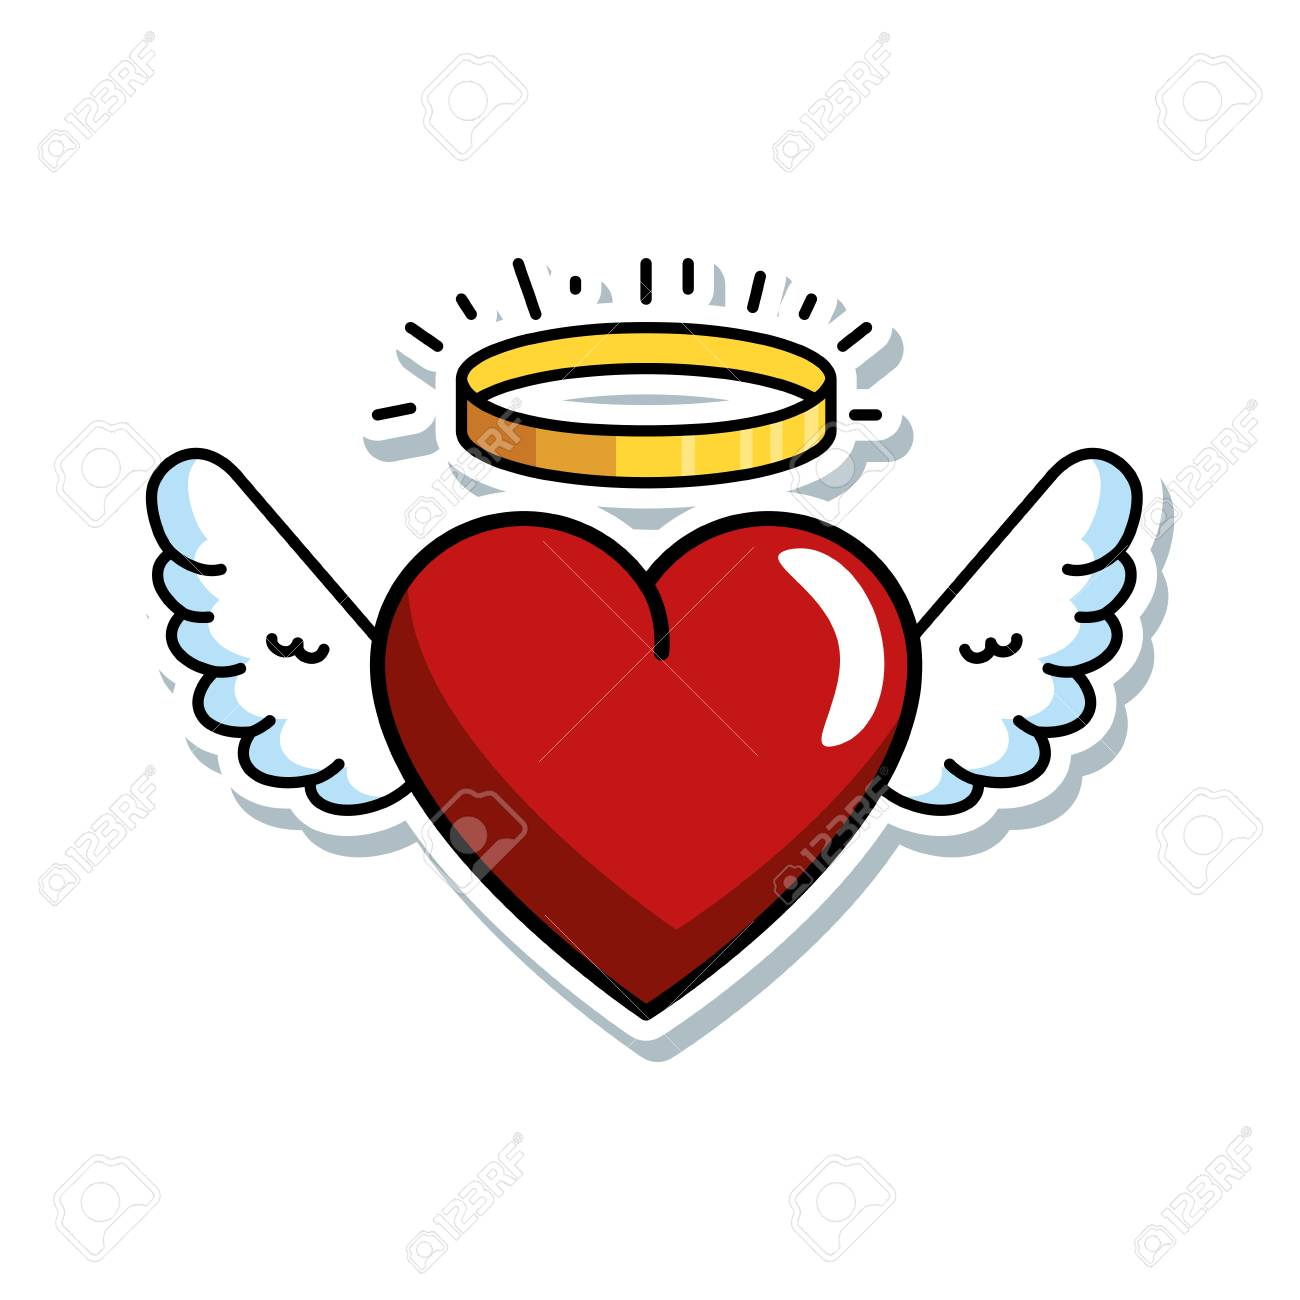 cute heart with wings and halo vector illustration design - 90190523